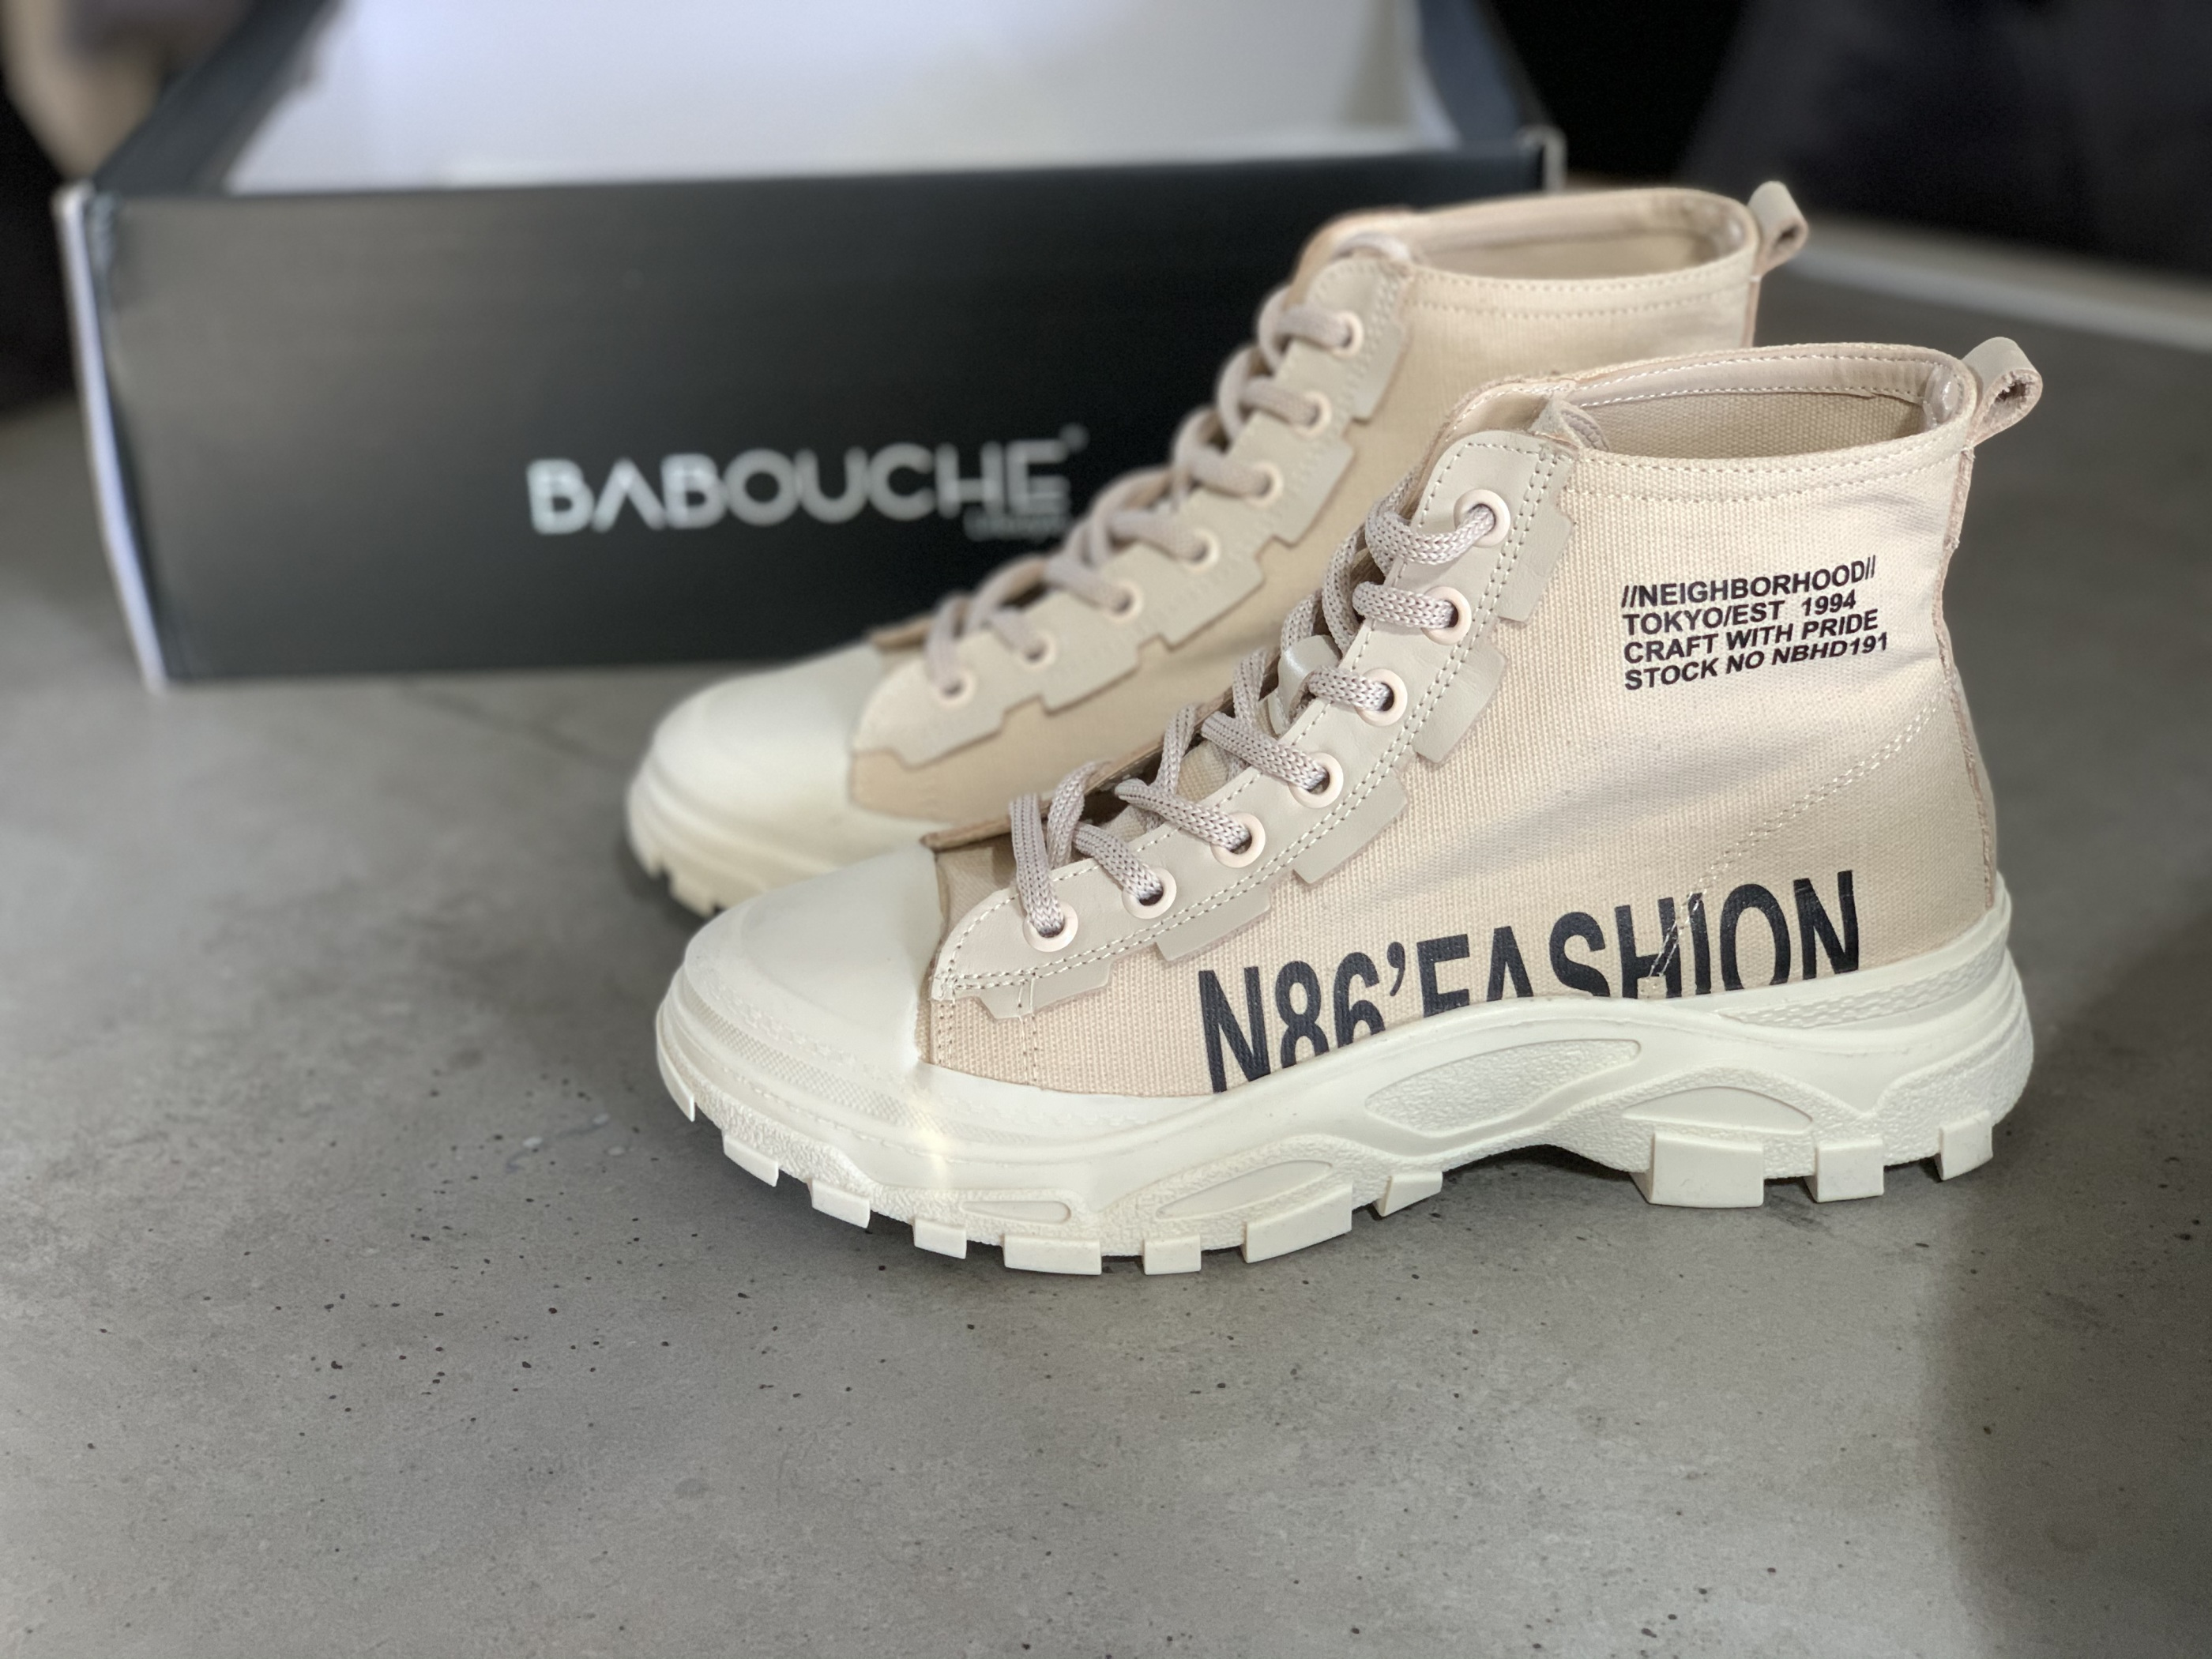 BABOUCHE Sneakers IMAGE BY ME